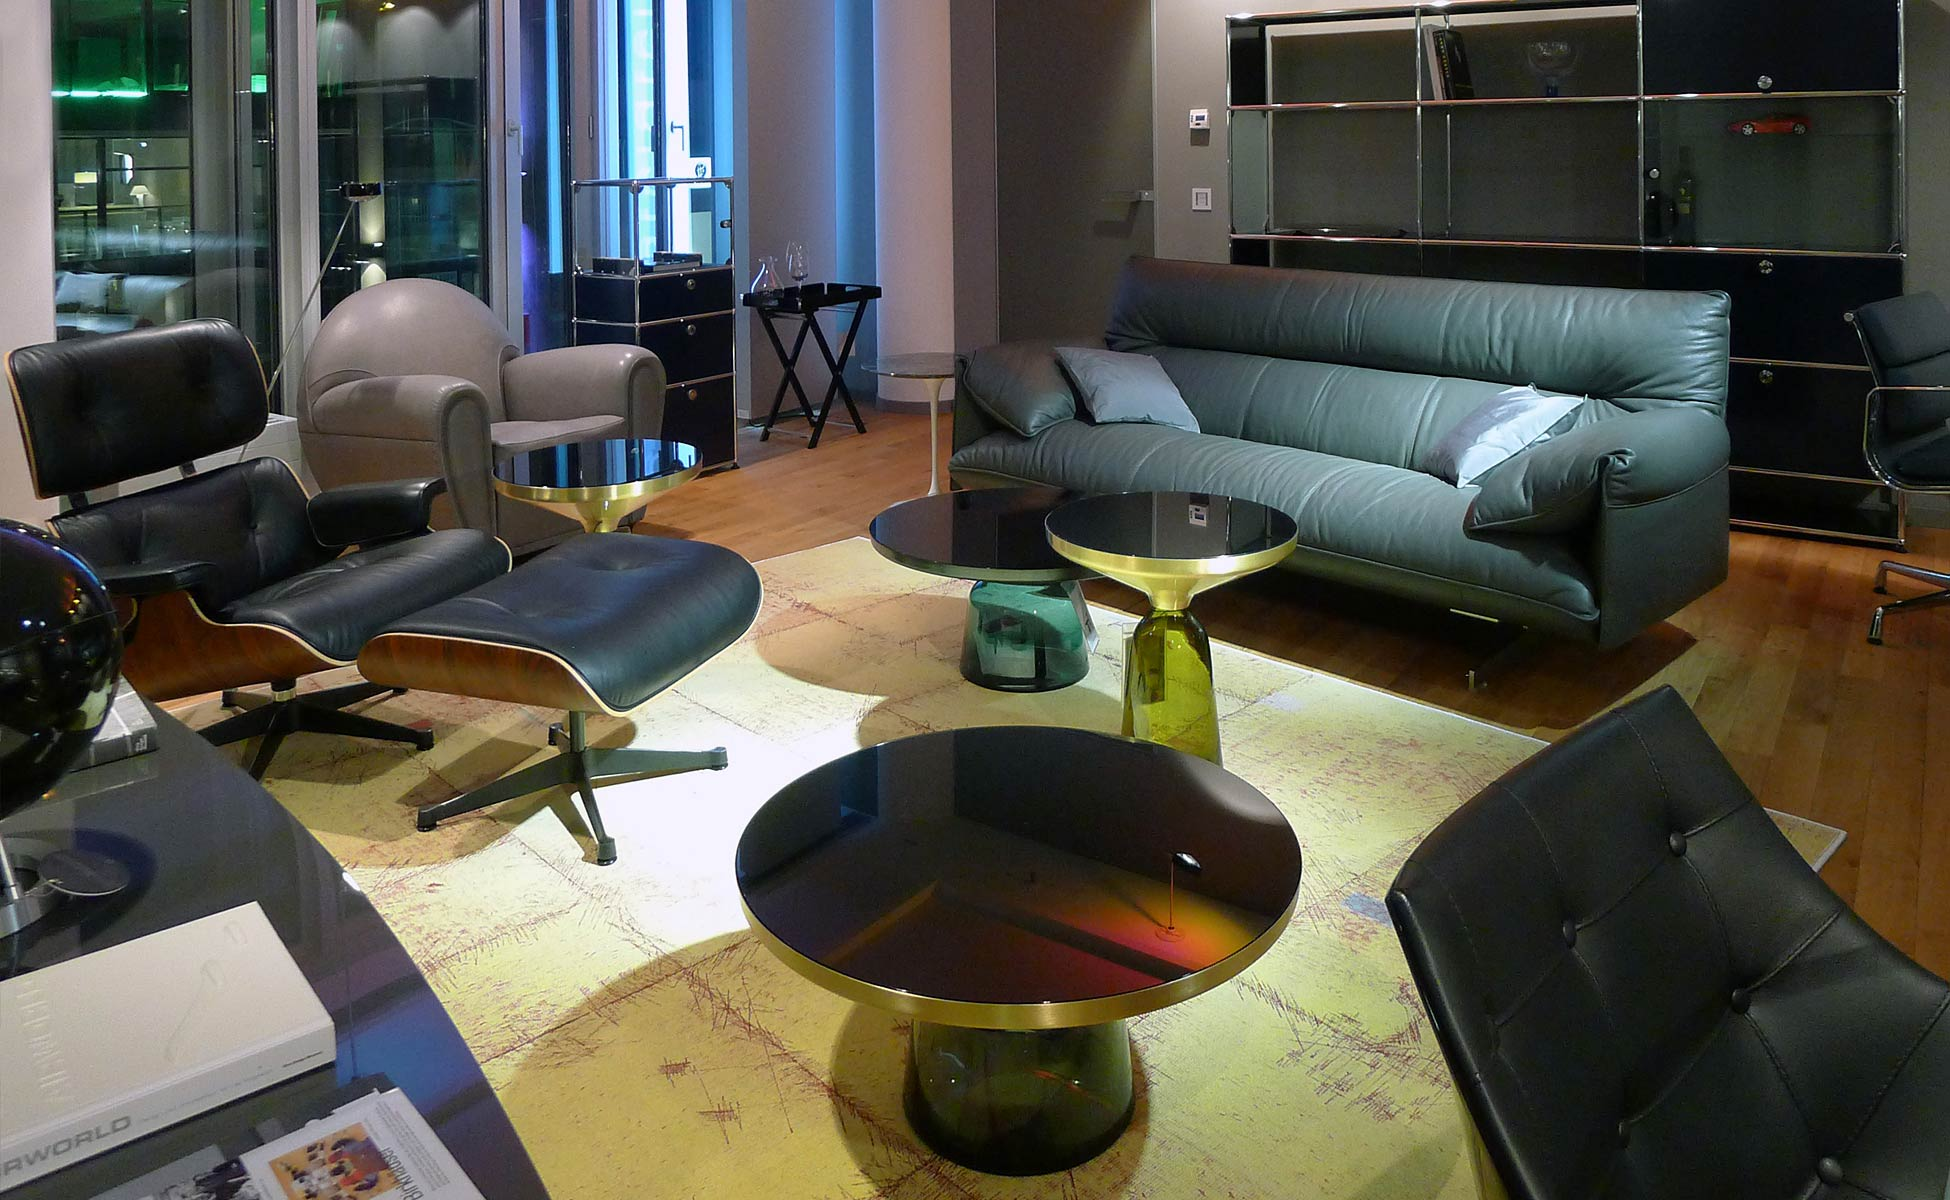 classicon + vitra + cassina im steidten+ showroom in berlin